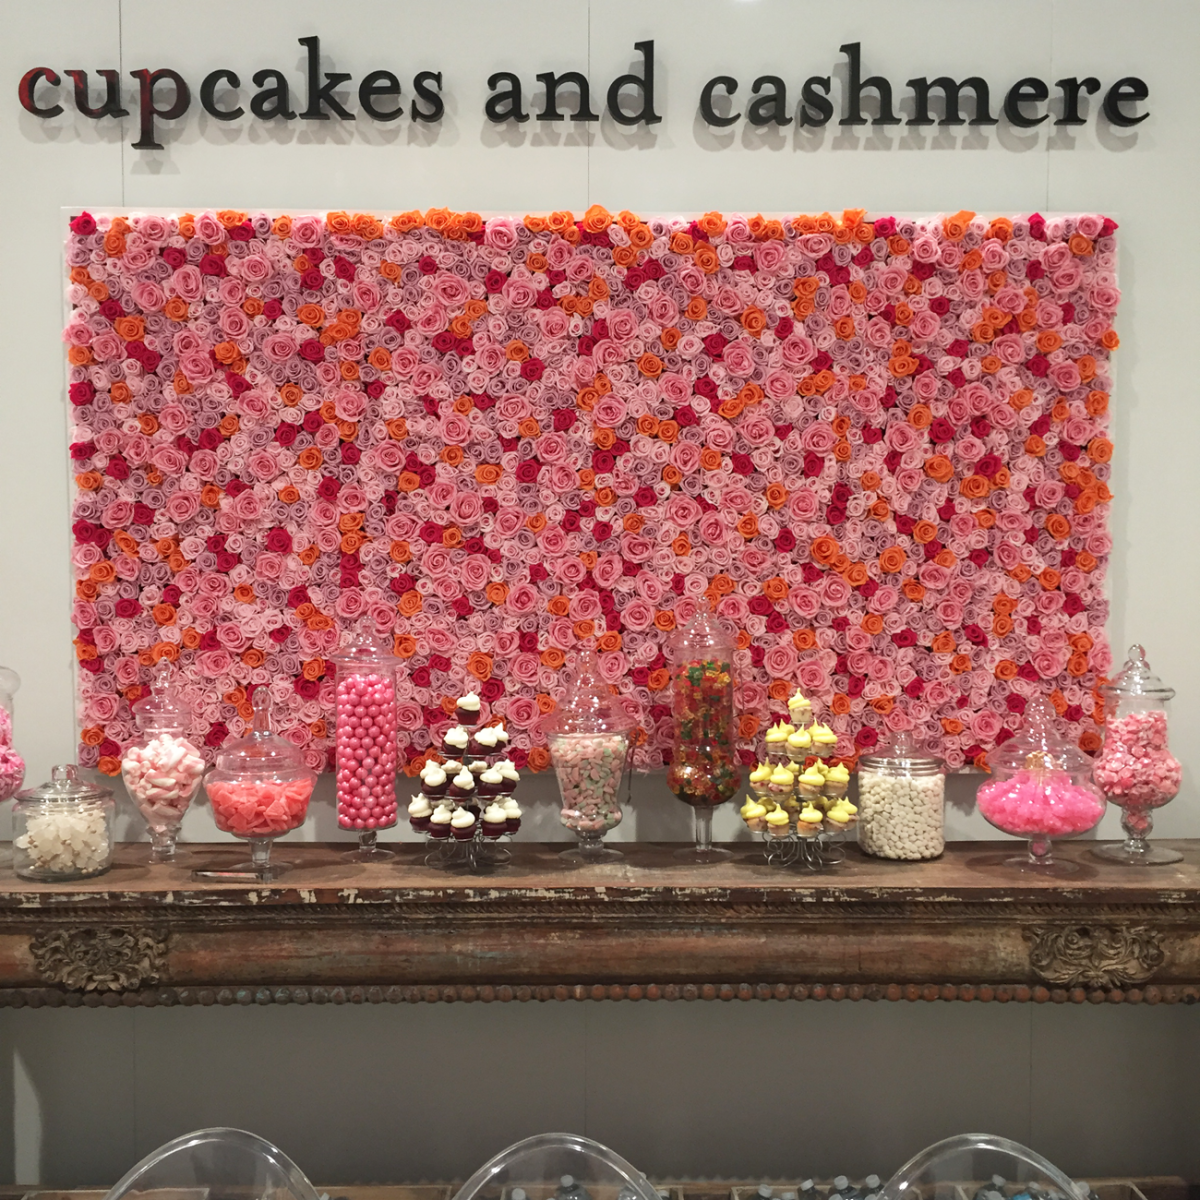 {The Cupcakes and Cashmere booth at Magic}